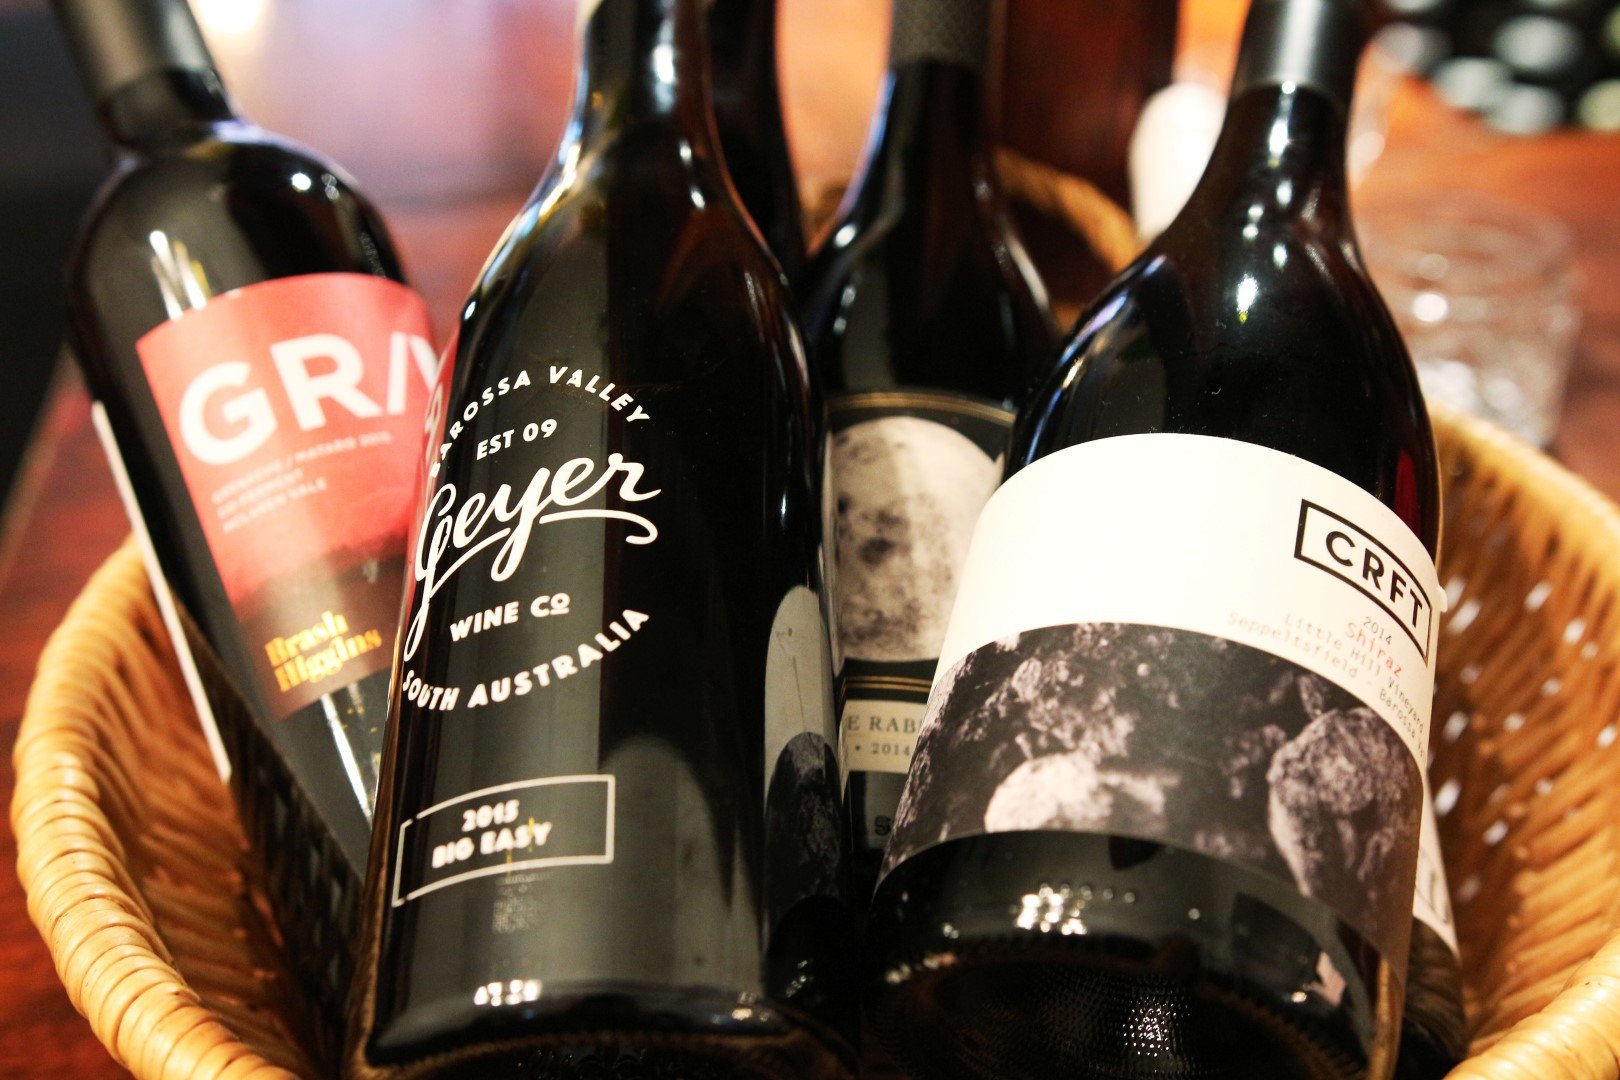 A small selection of the many wines available